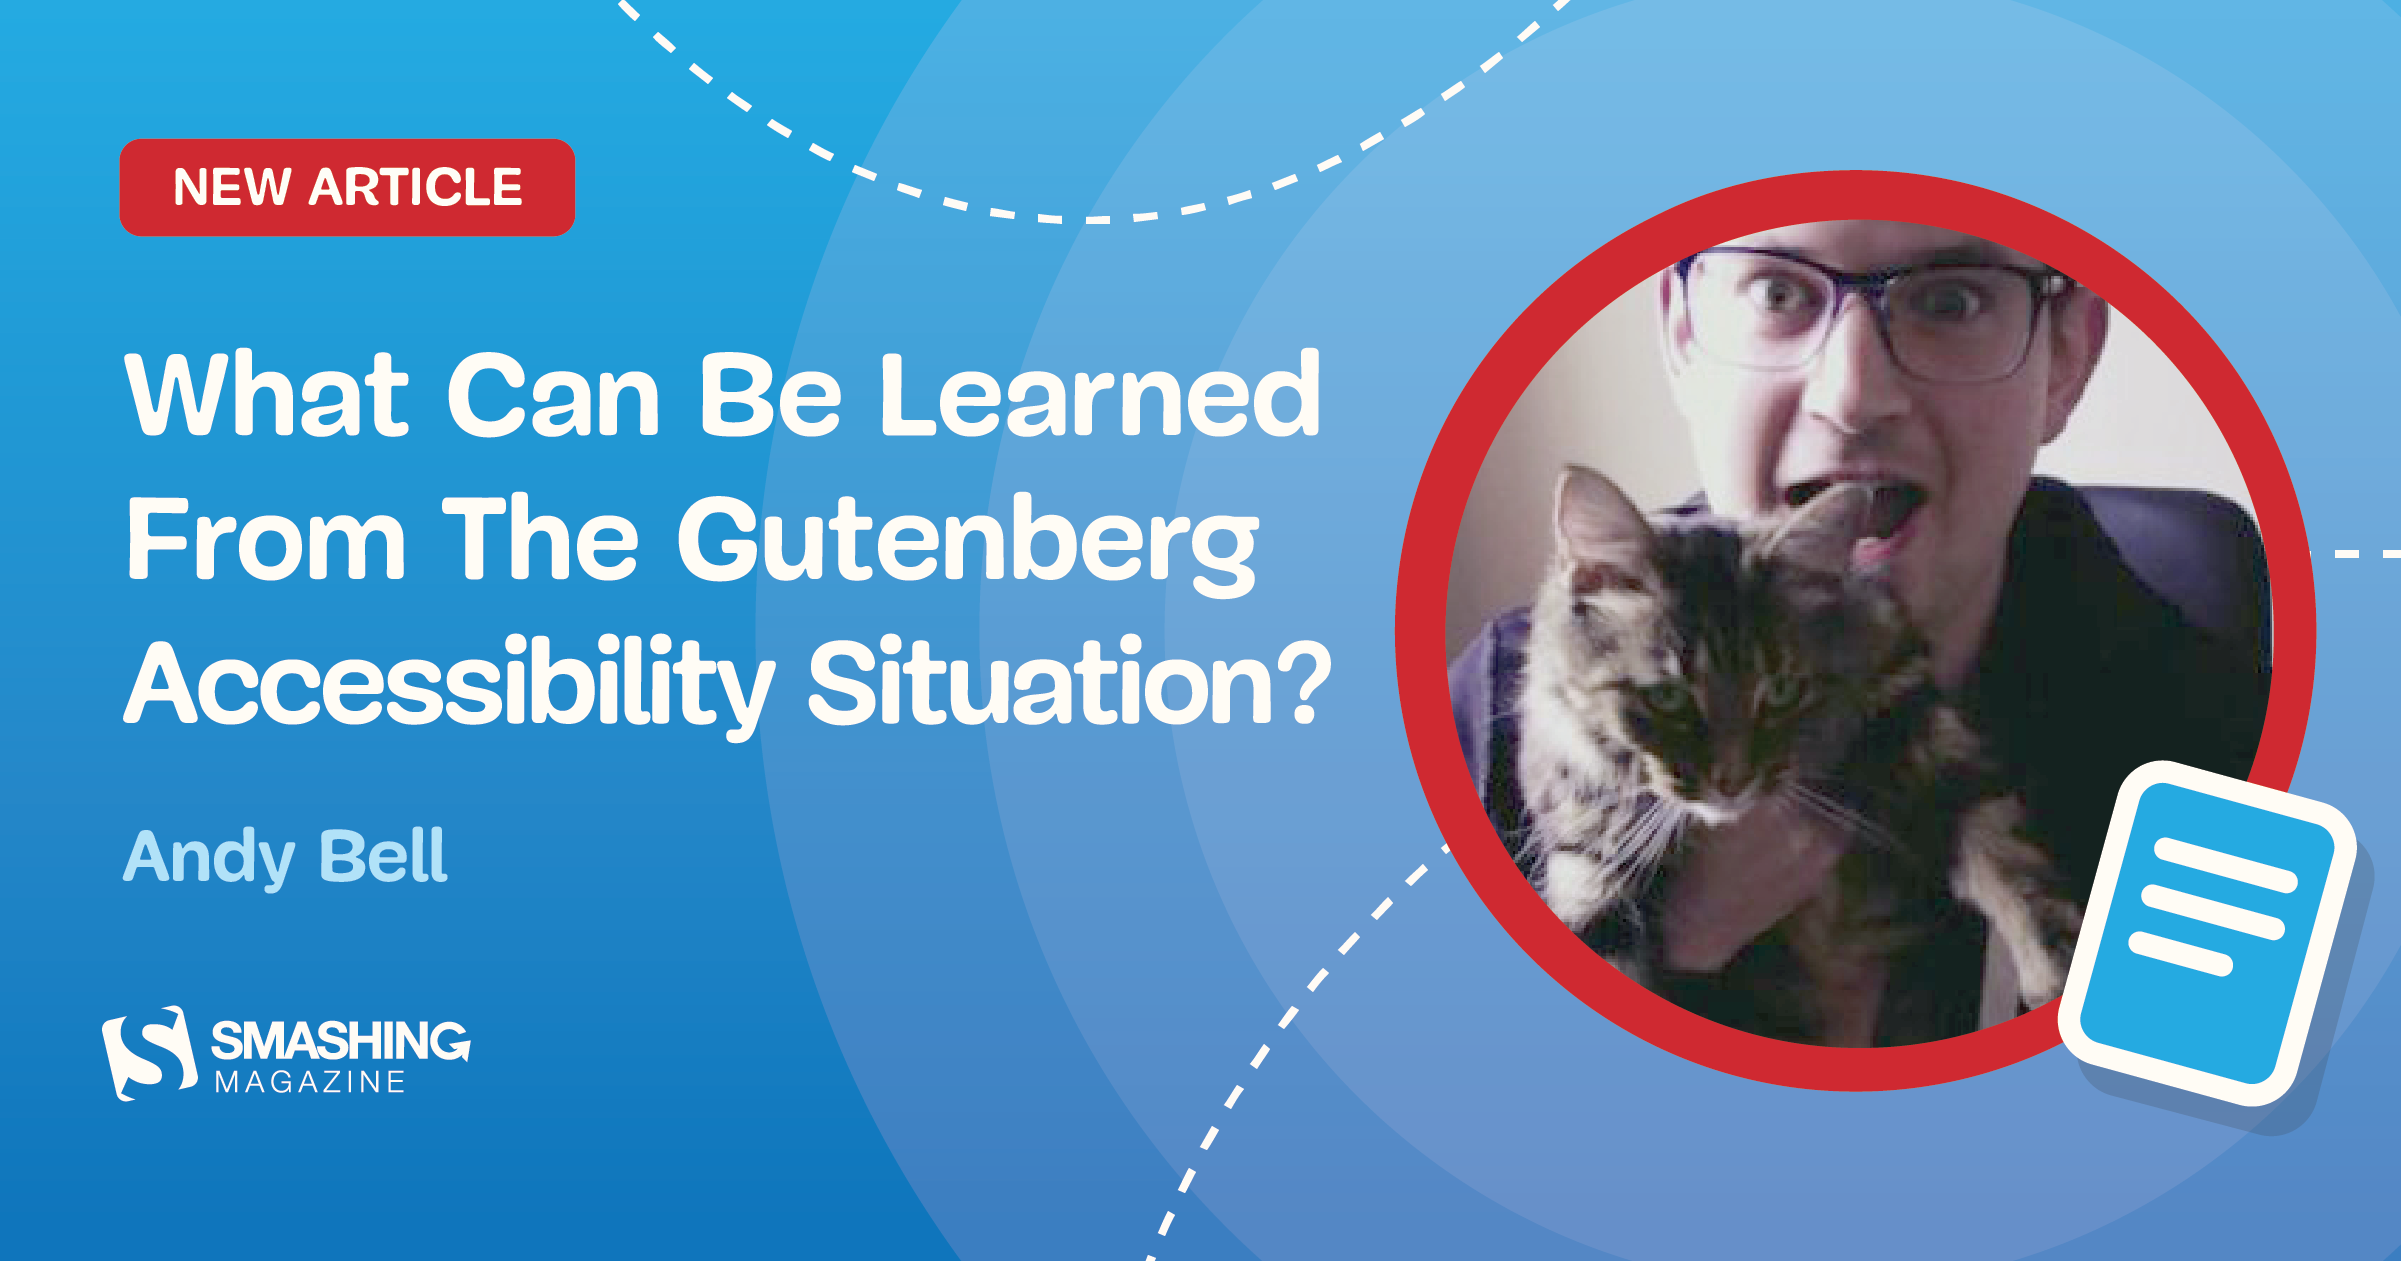 What Can Be Learned From The Gutenberg Accessibility Situation?